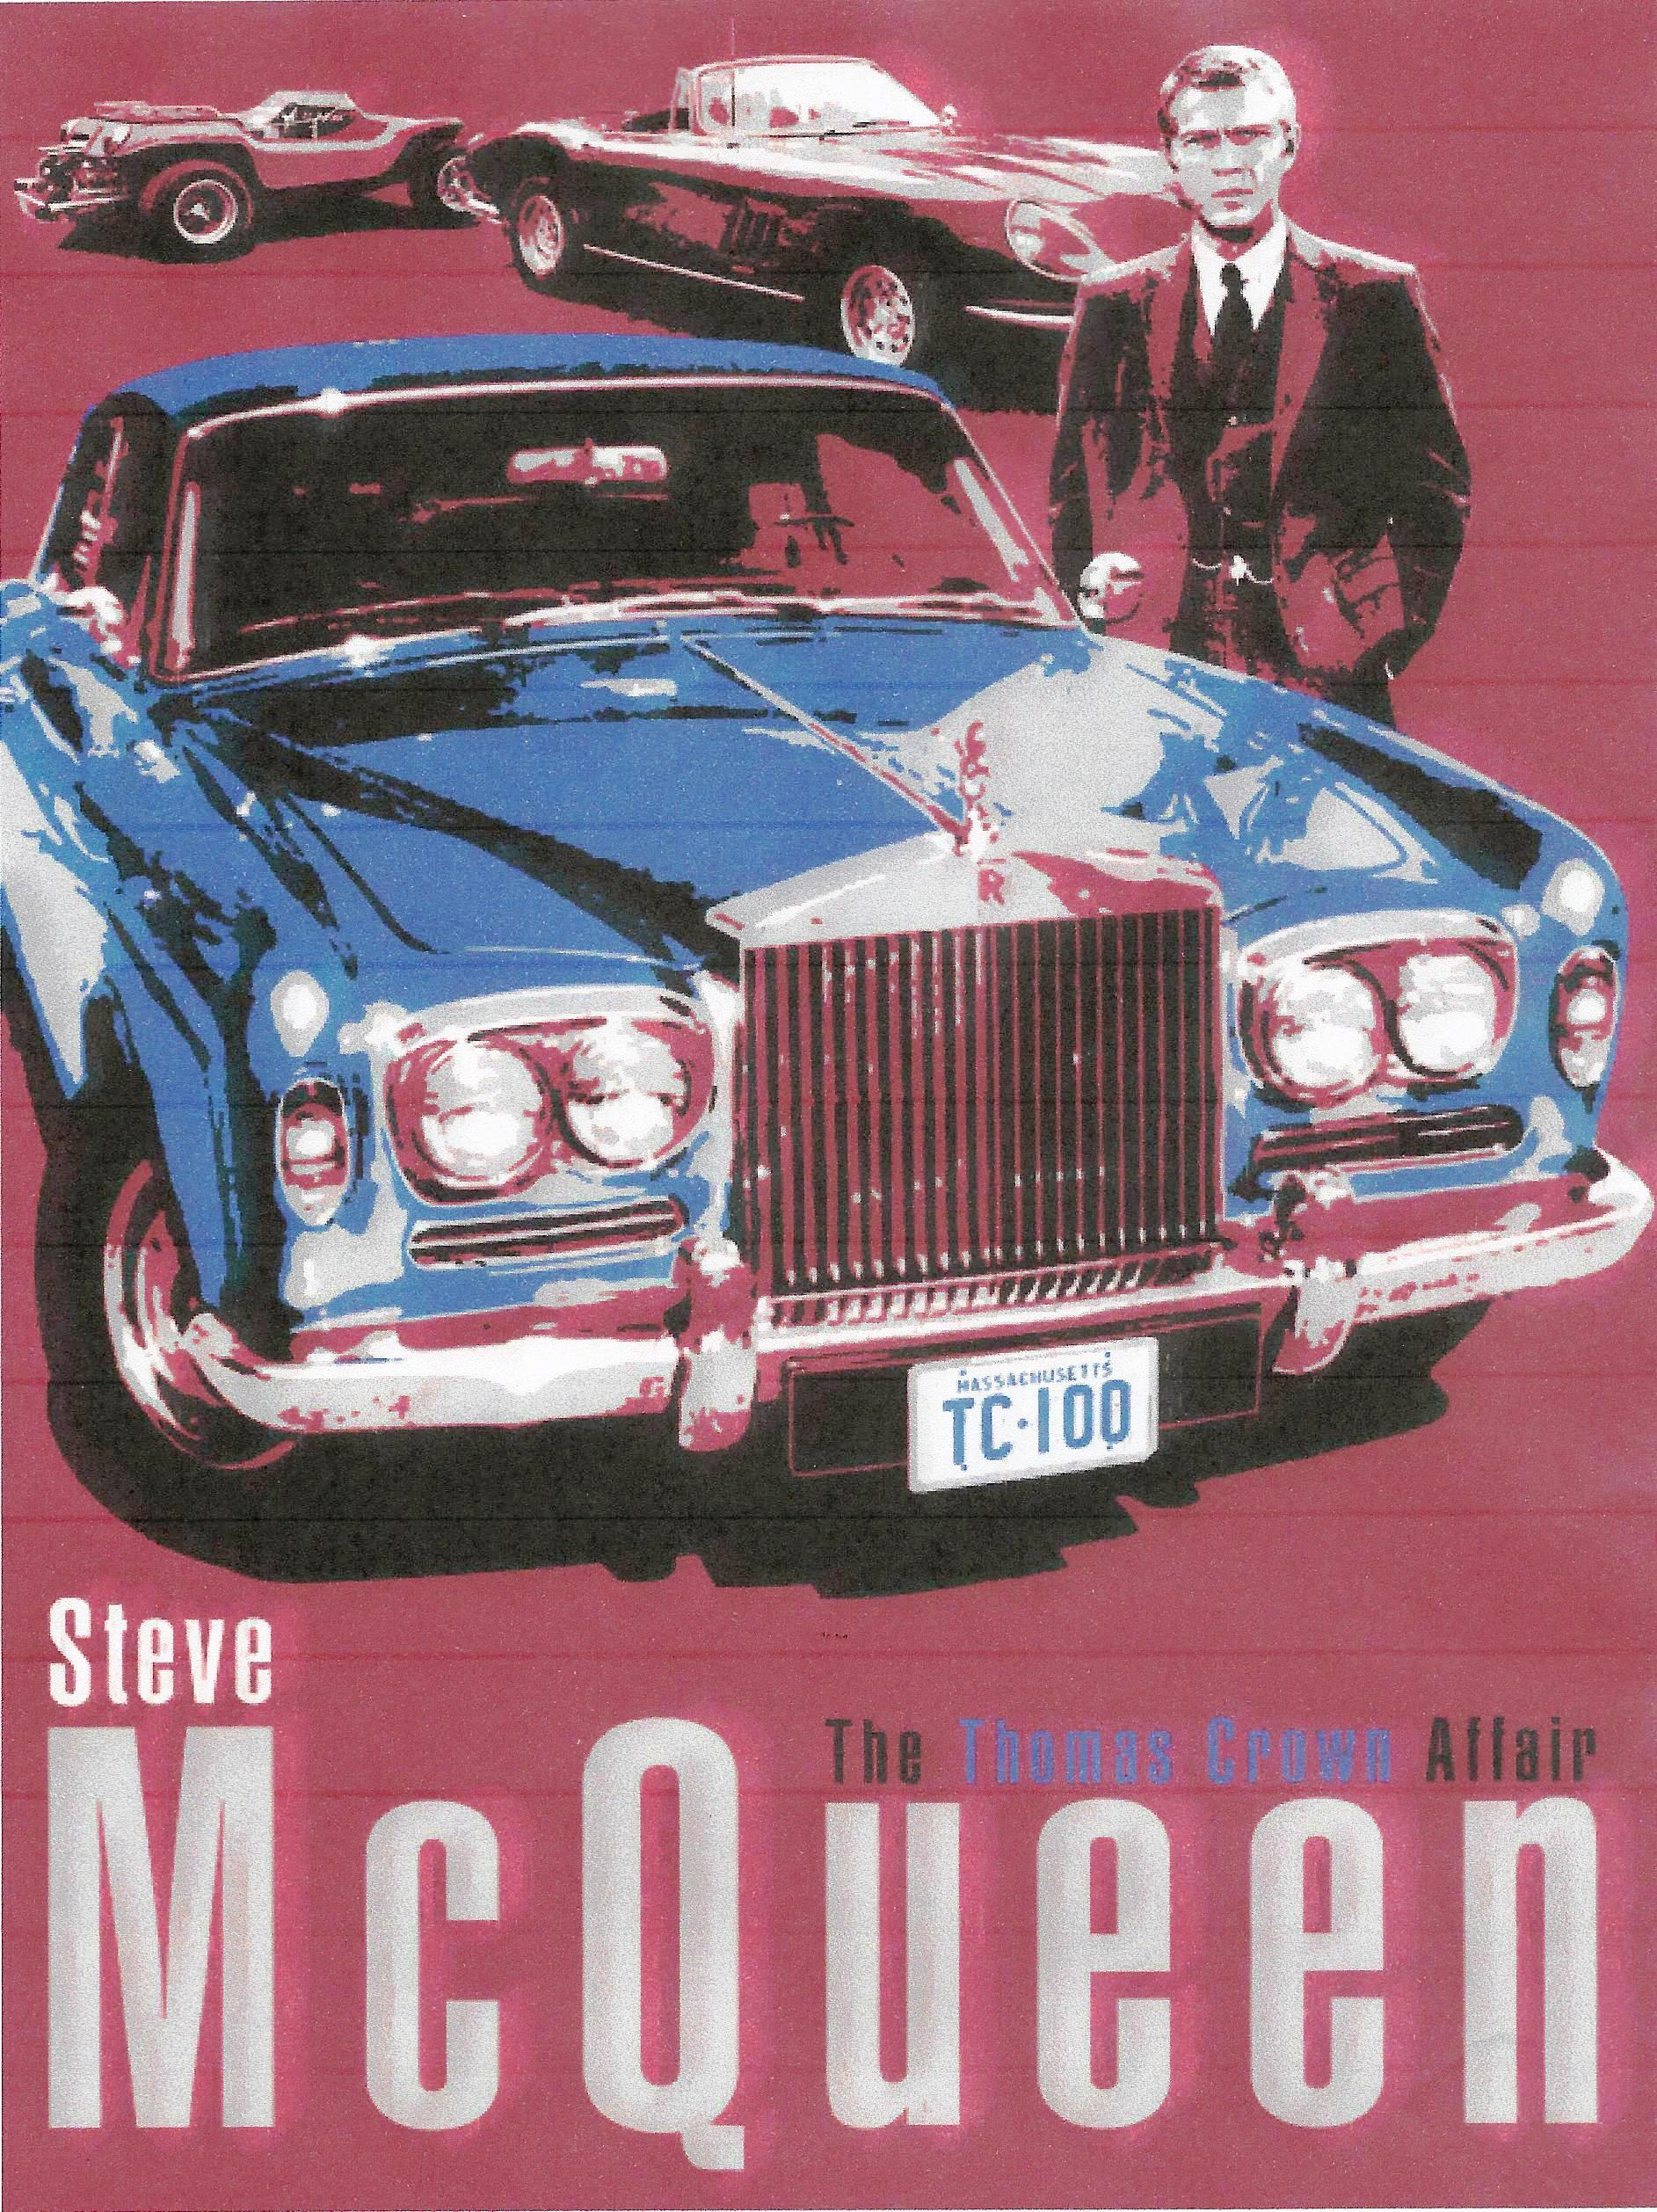 FRIENDS OF STEVE MCQUEEN CAR AND MOTORCYCLE SHOW SET FOR JUNE 6/7, 2014